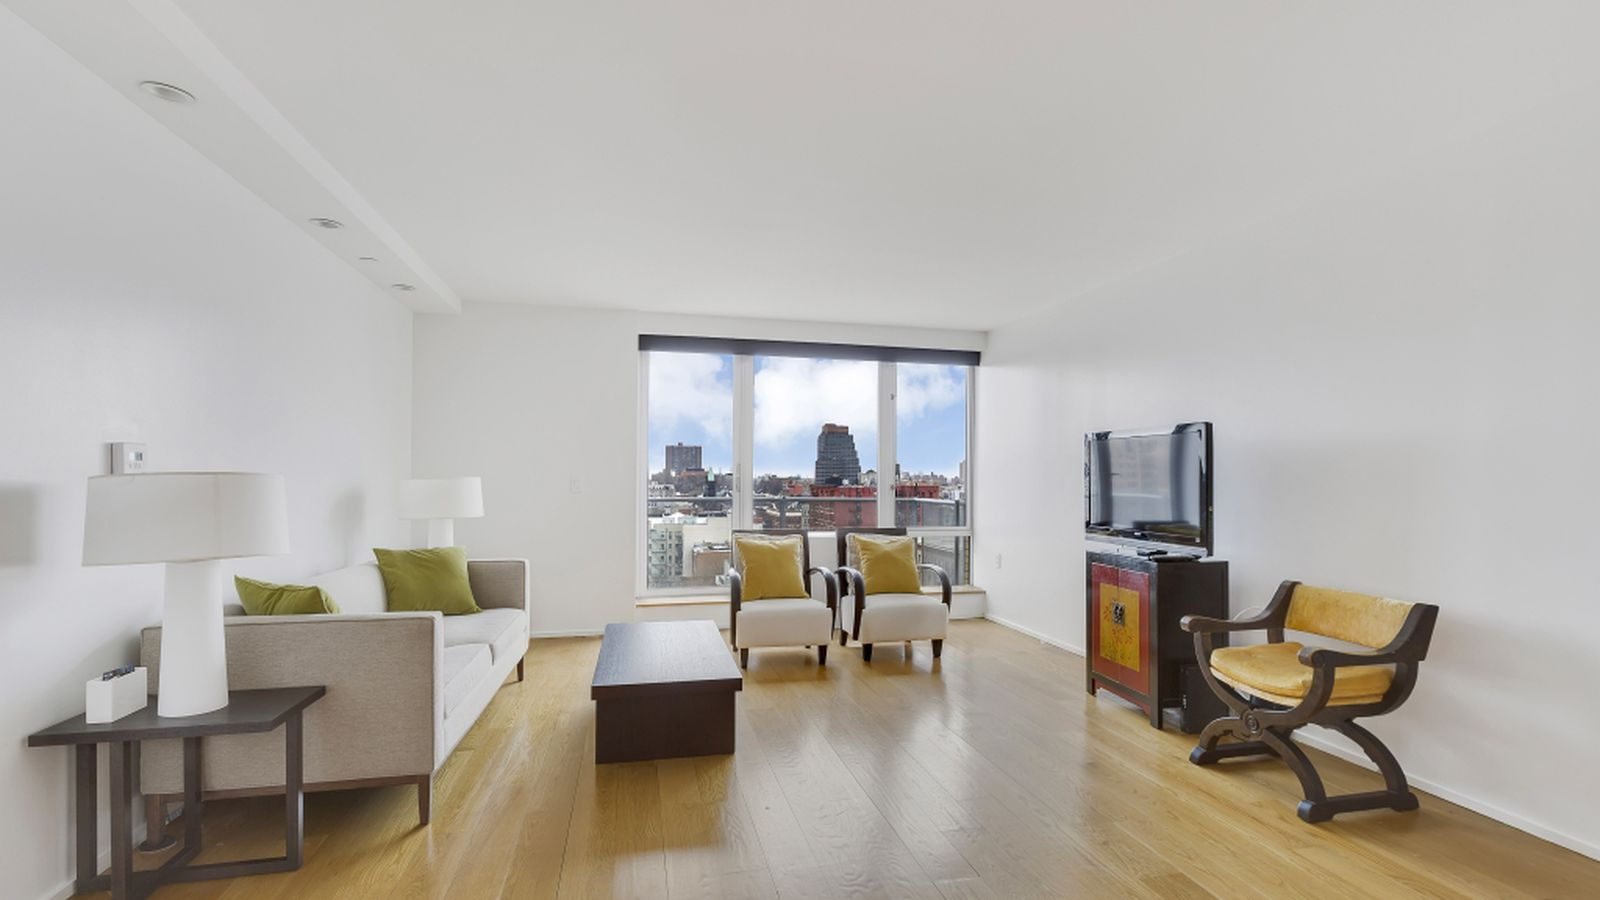 Cnn Anchor Don Lemon Sells Harlem Condo For 969 000